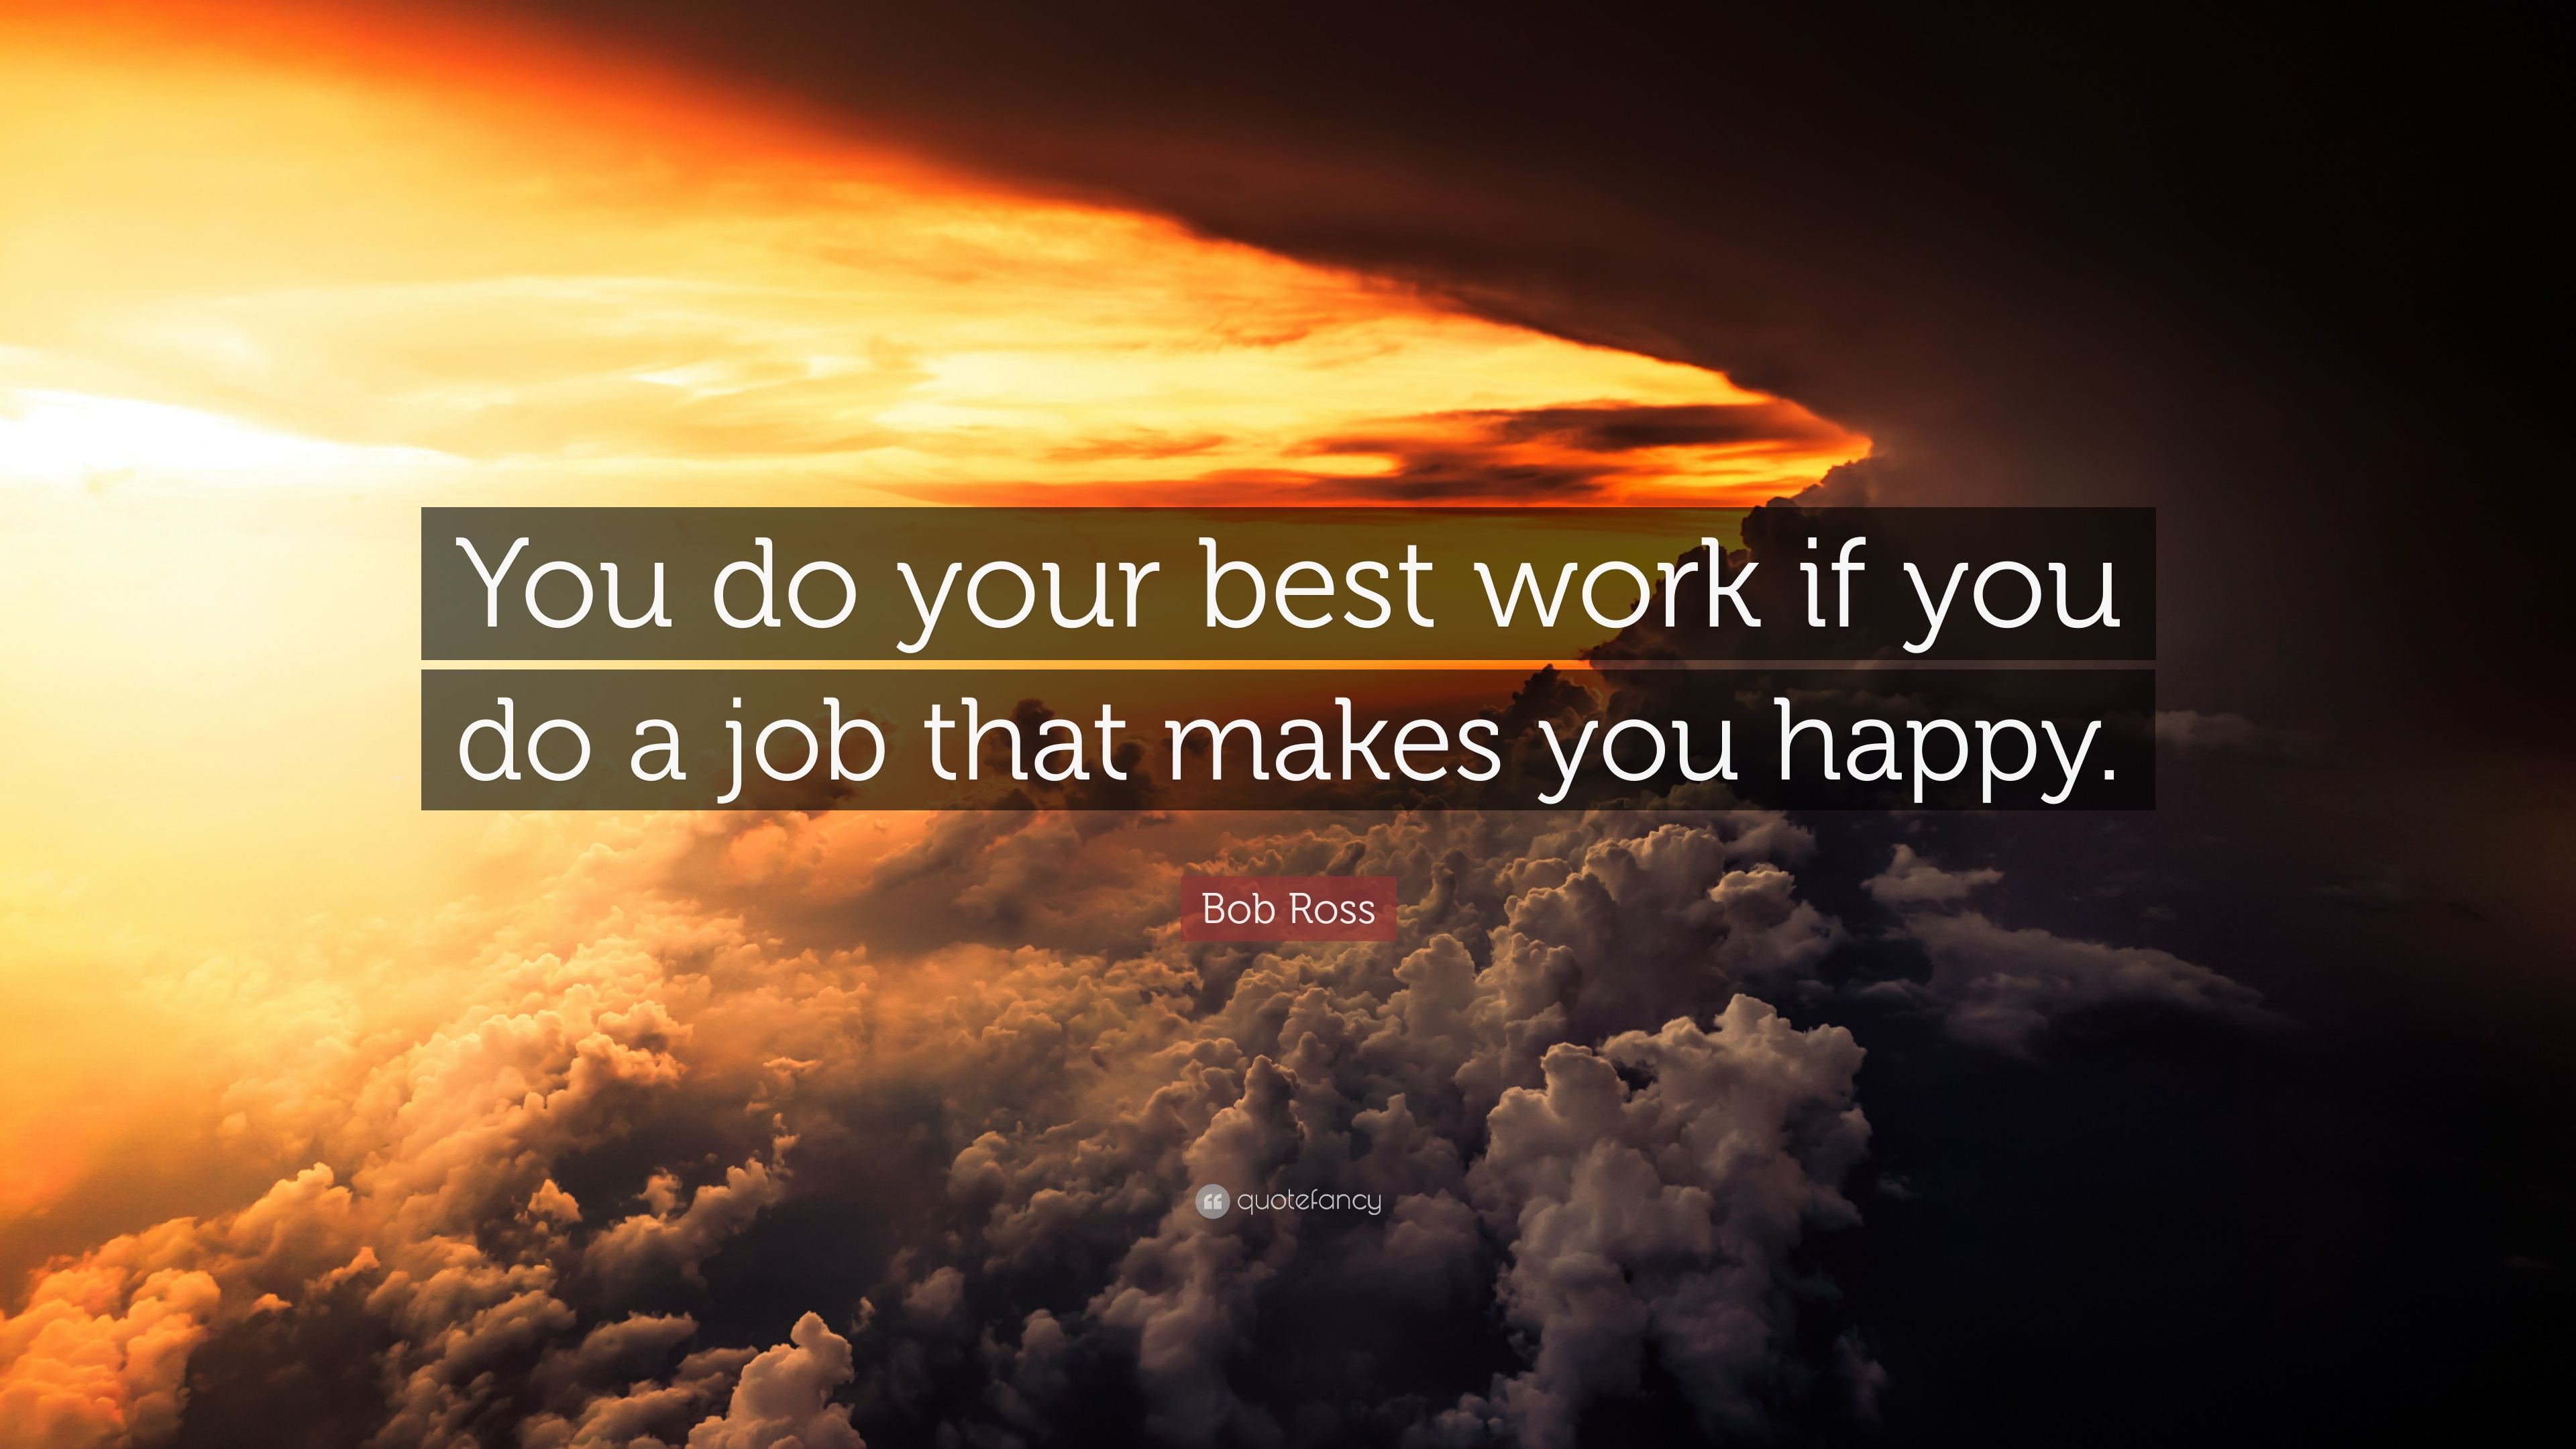 Bob Ross Quote You Do Your Best Work If You Do A Job That Makes